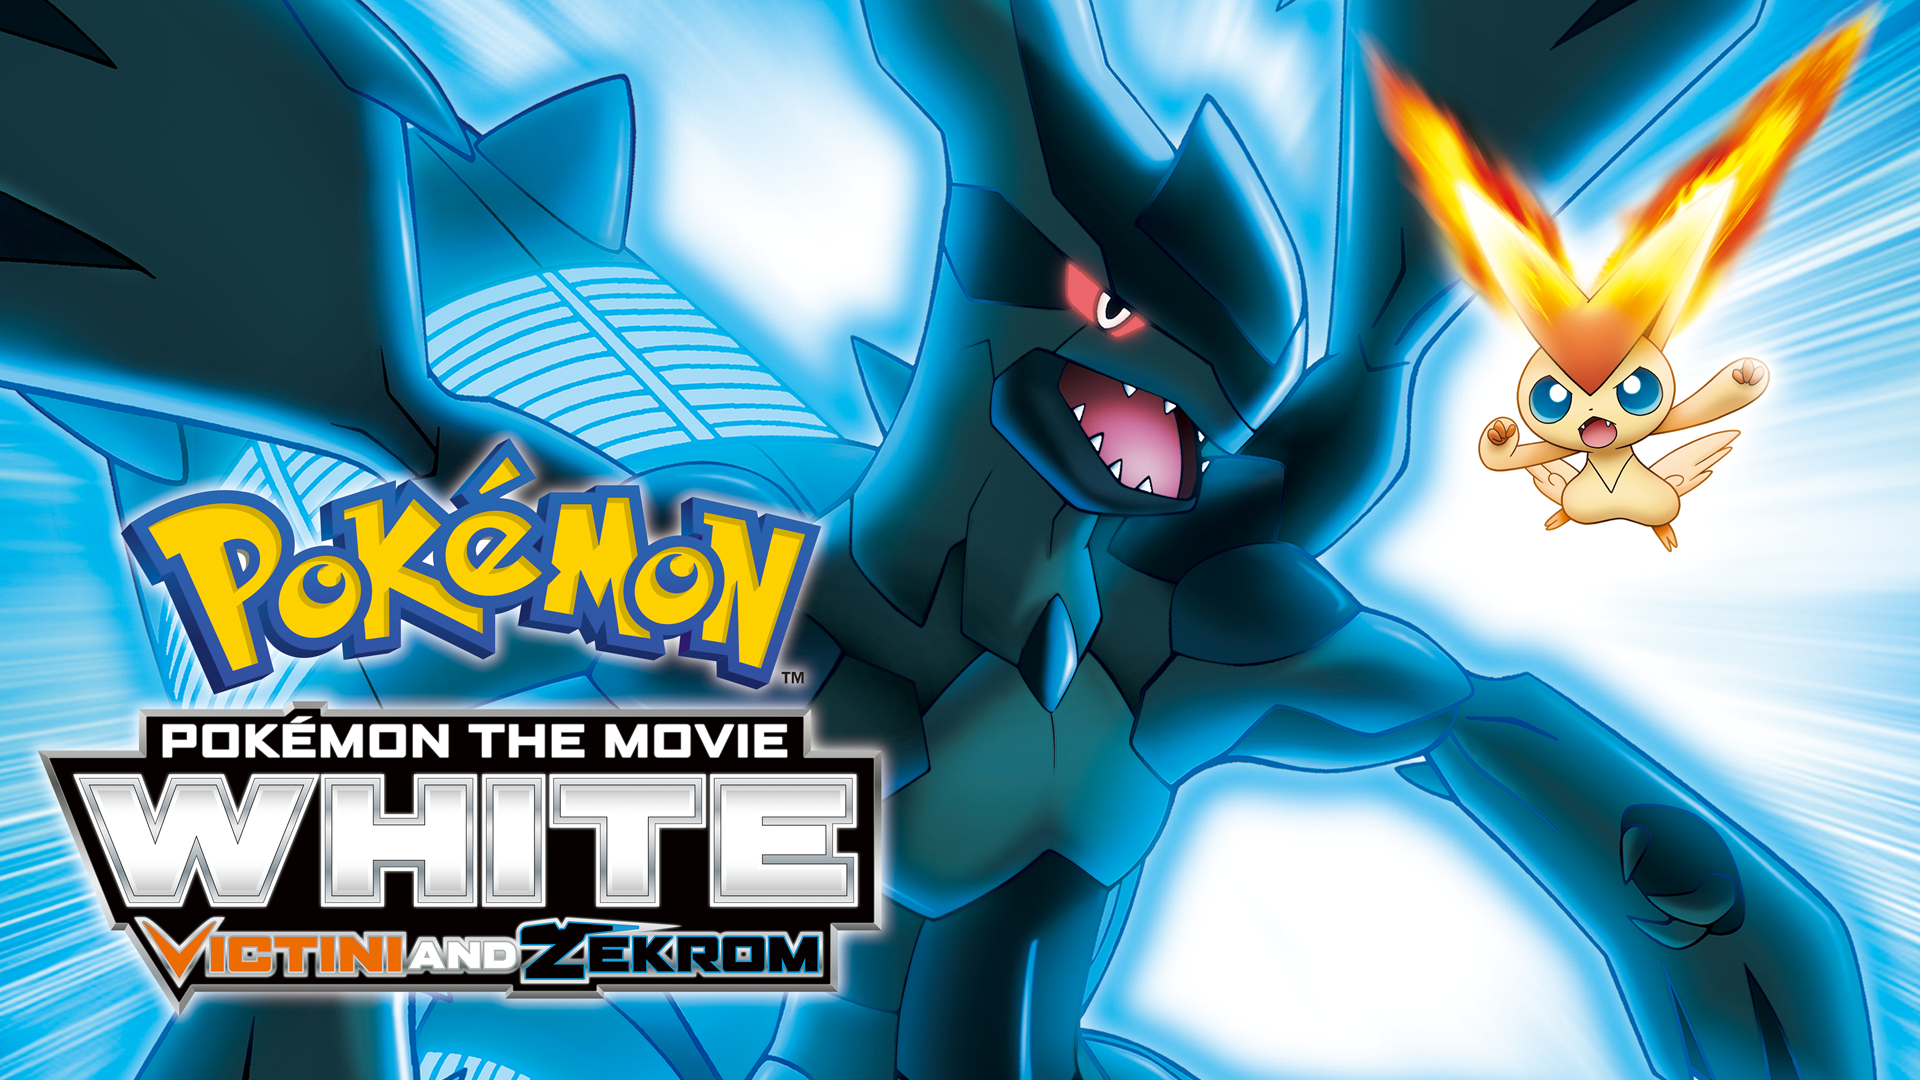 Pokémon the Movie: White-Victini and Zekrom